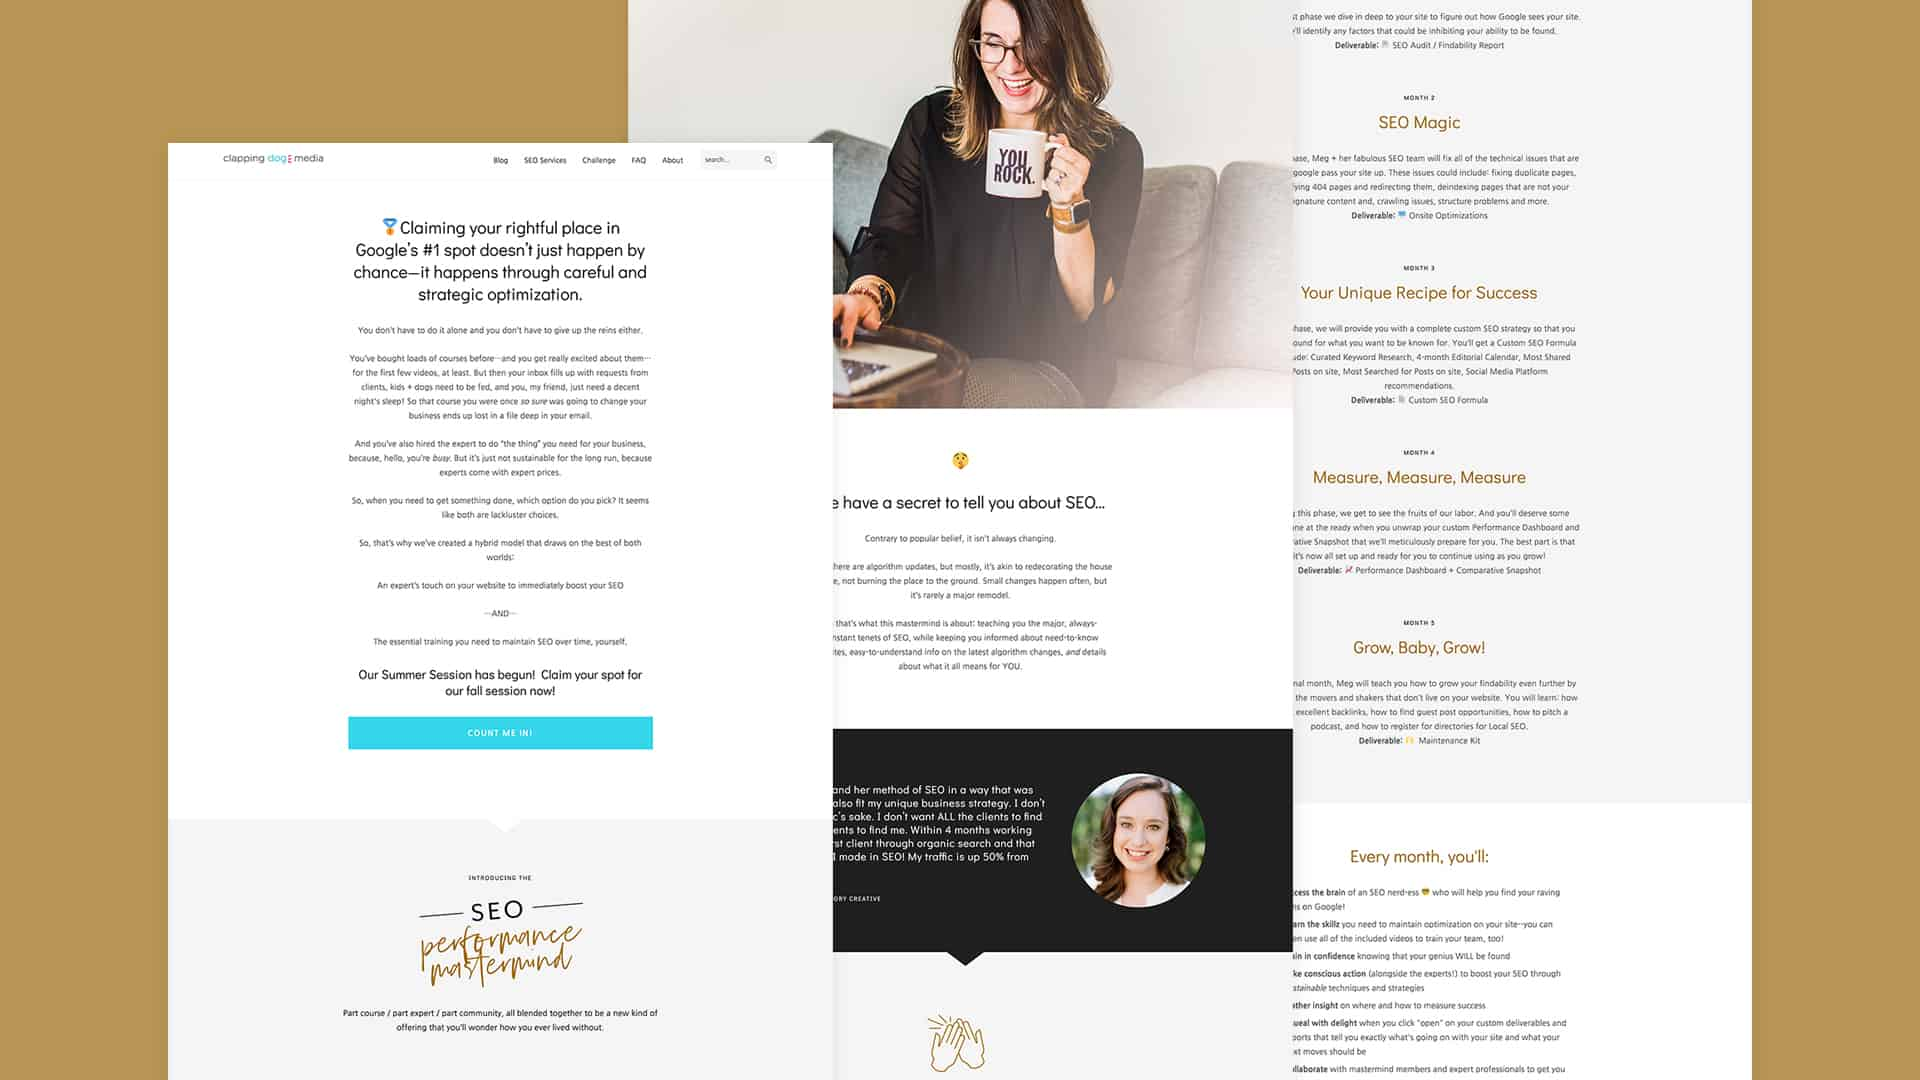 Clapping Dog Media Landing Page Design